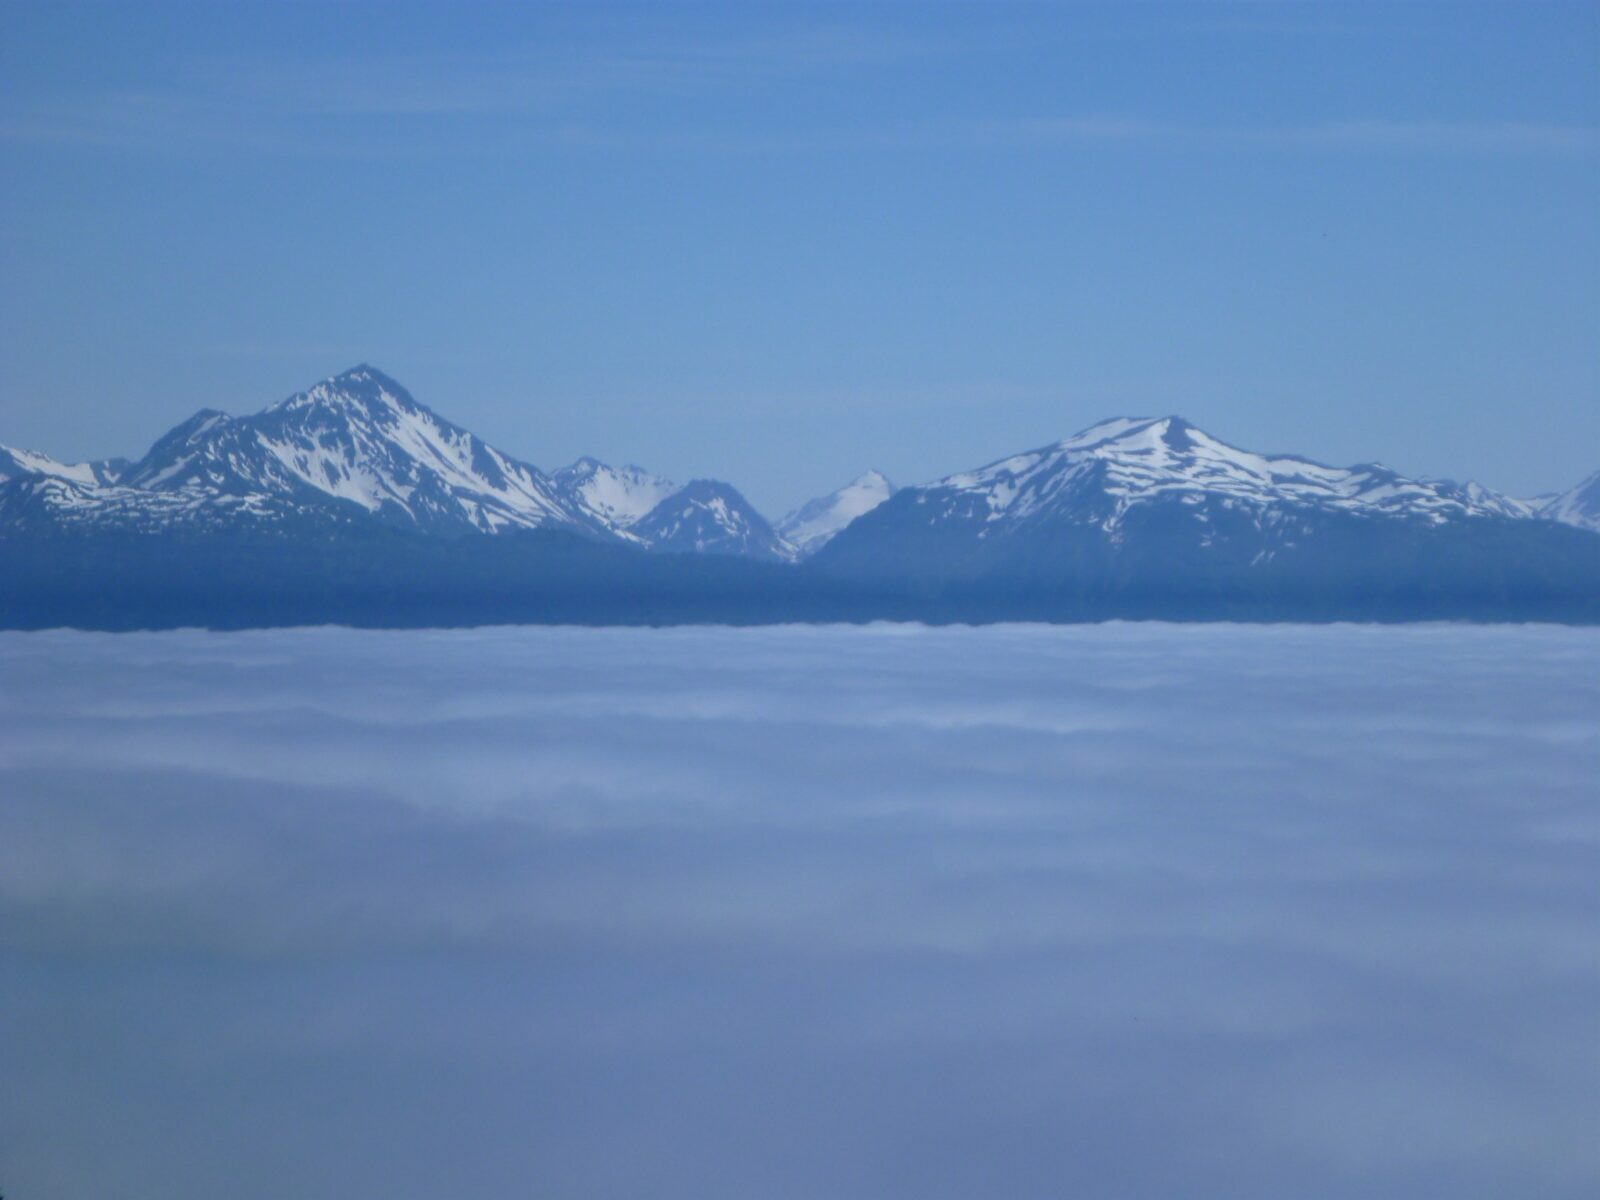 Mountains with lingering snow rise above a thick cloud layer on a sunny day